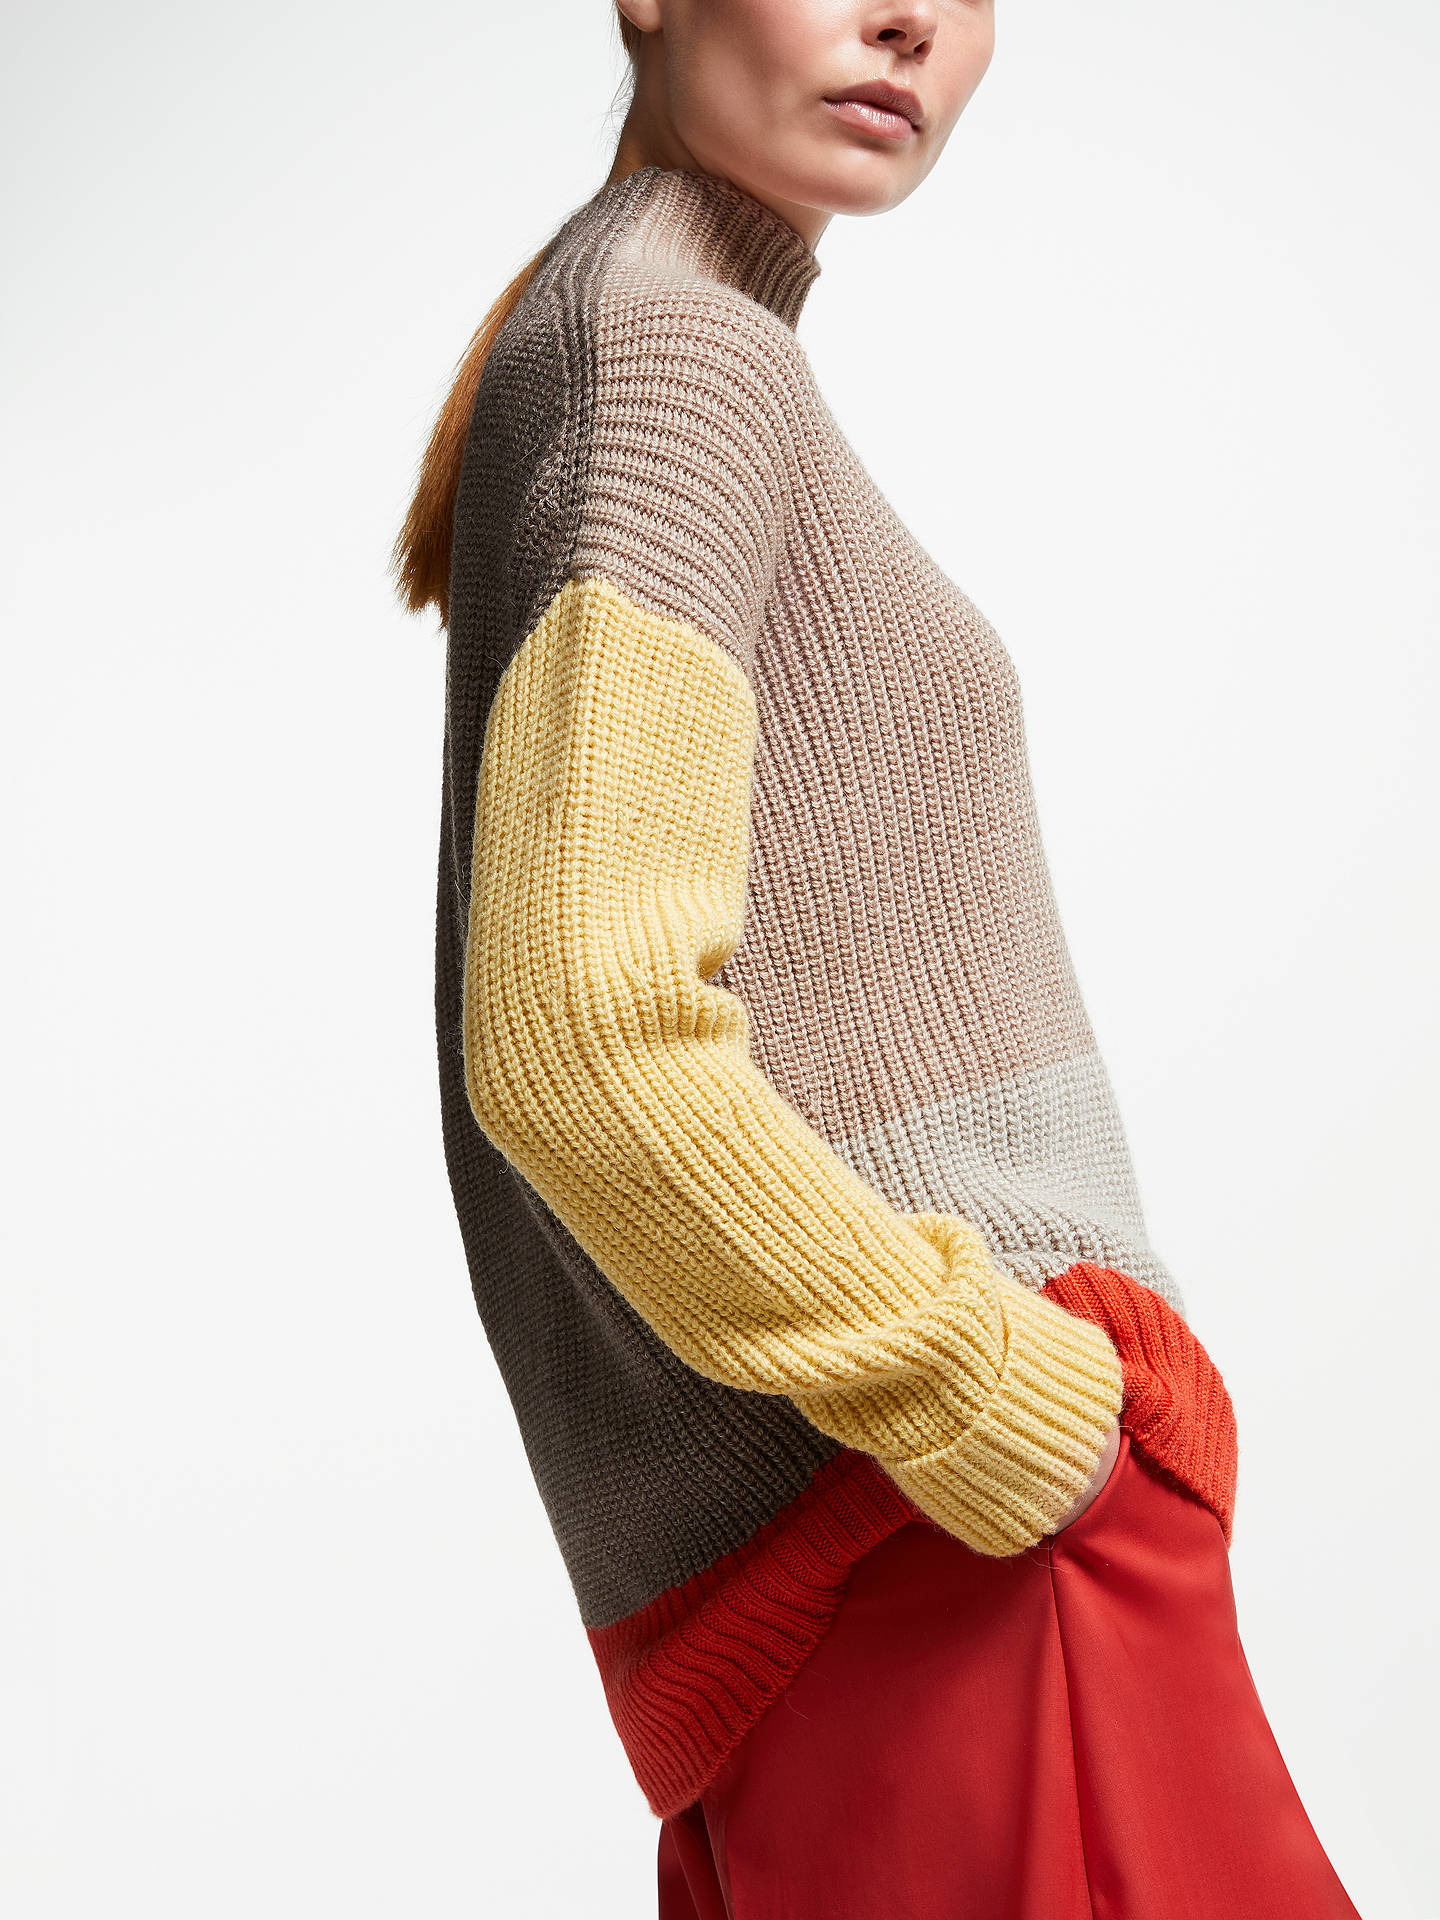 BuyJohn Lewis & Partners Block Colour Turtle Neck Sweater, Neutral/Mustard/Orange, XS Online at johnlewis.com